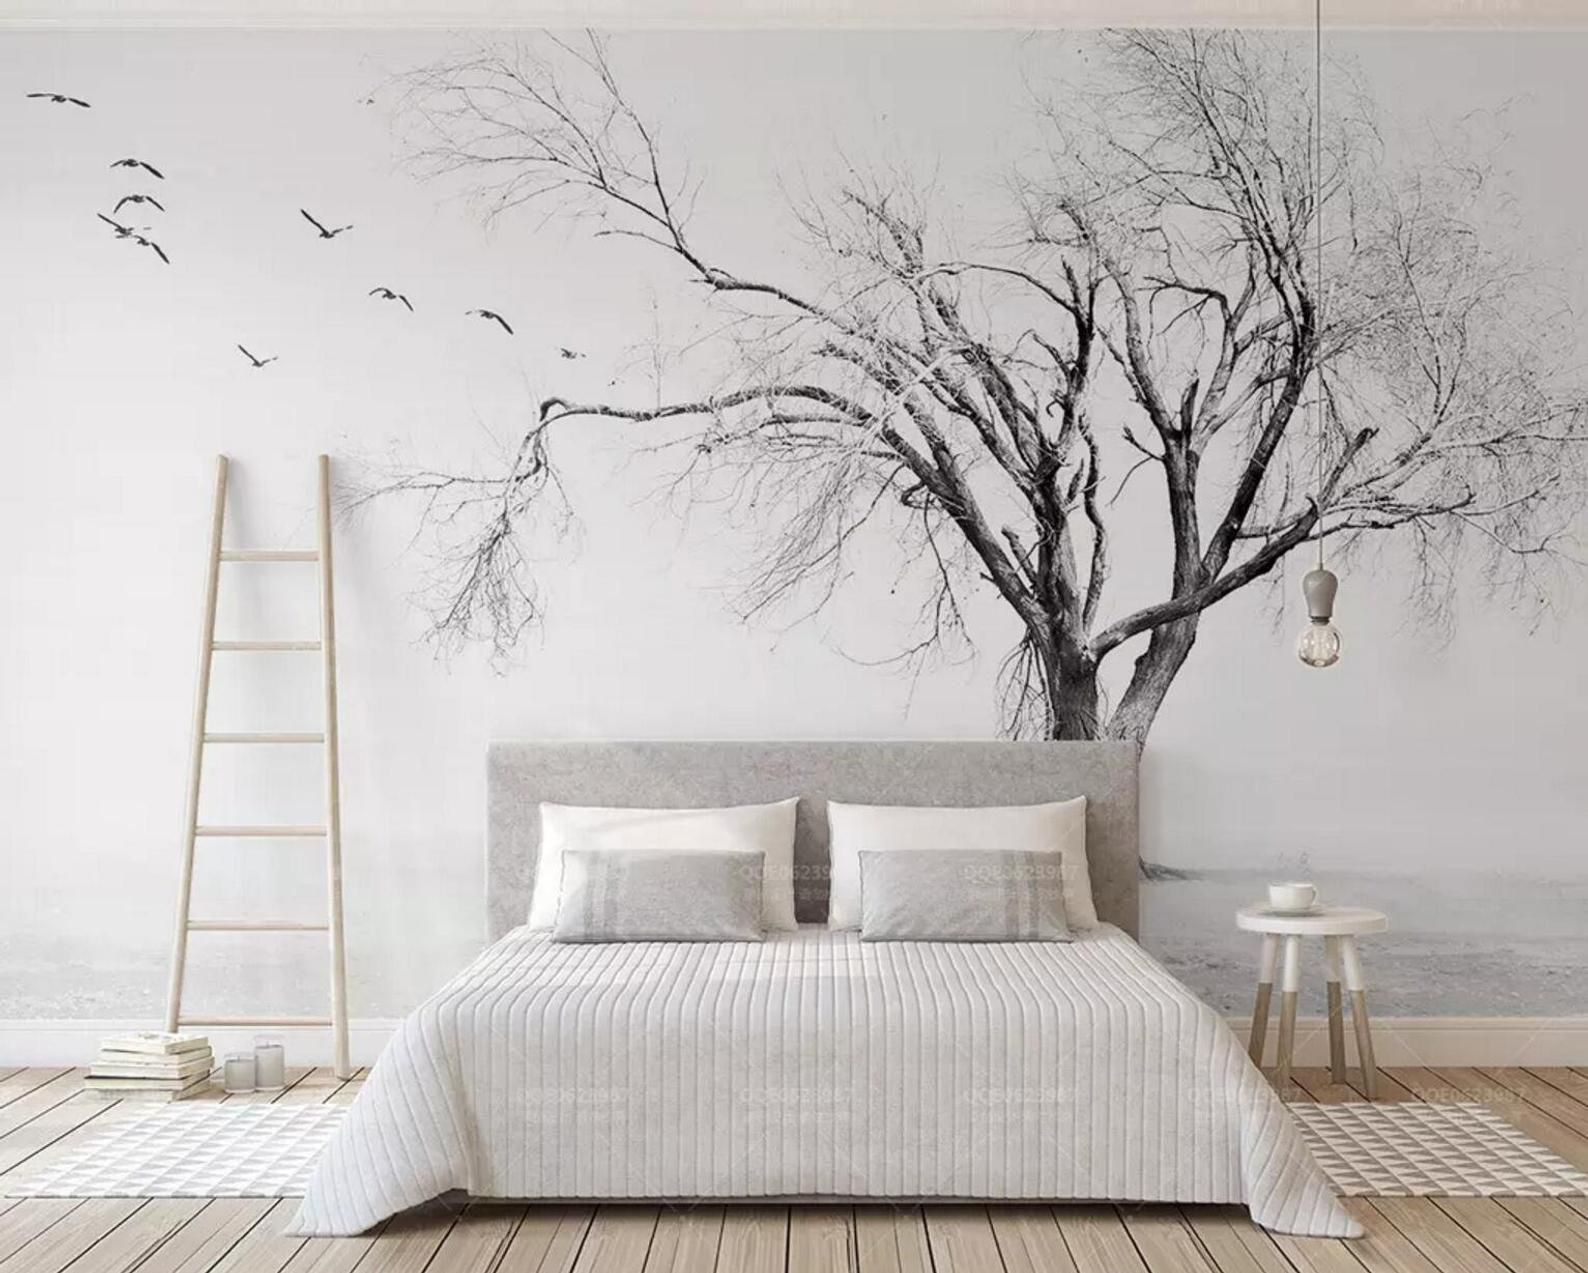 3d Alone Birds Dead Trees Wallpaper Removable Self Adhesive Etsy Tree Wallpaper Wall Wallpaper 3d Wallpaper Black And White